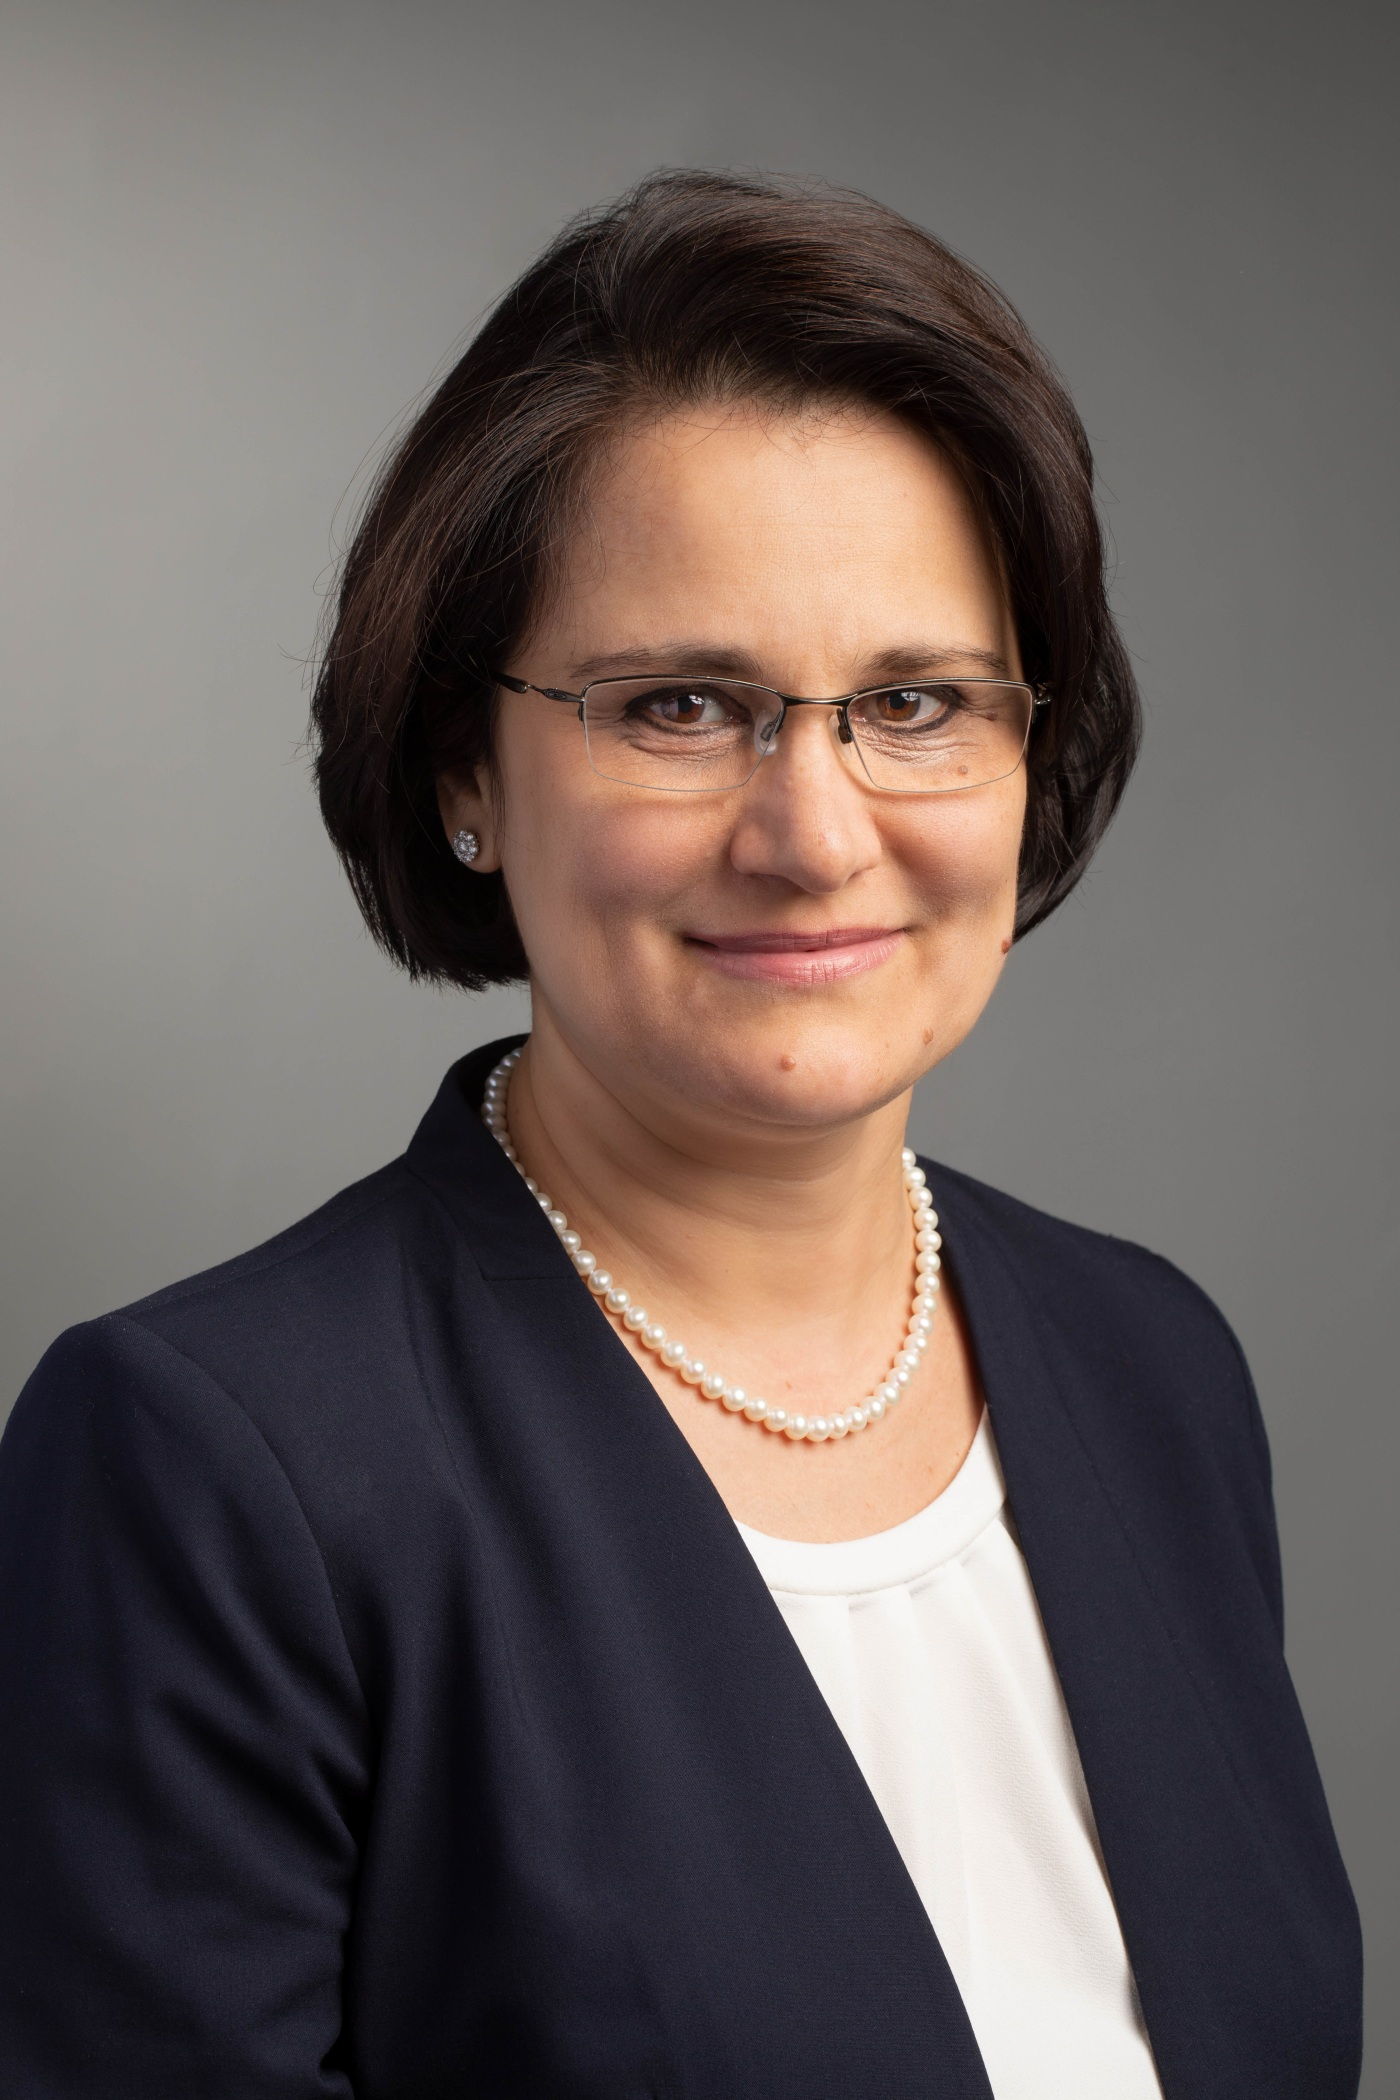 Dr. Anca Bulgaru joins Smilow Cancer Hospital Care Center at Waterford